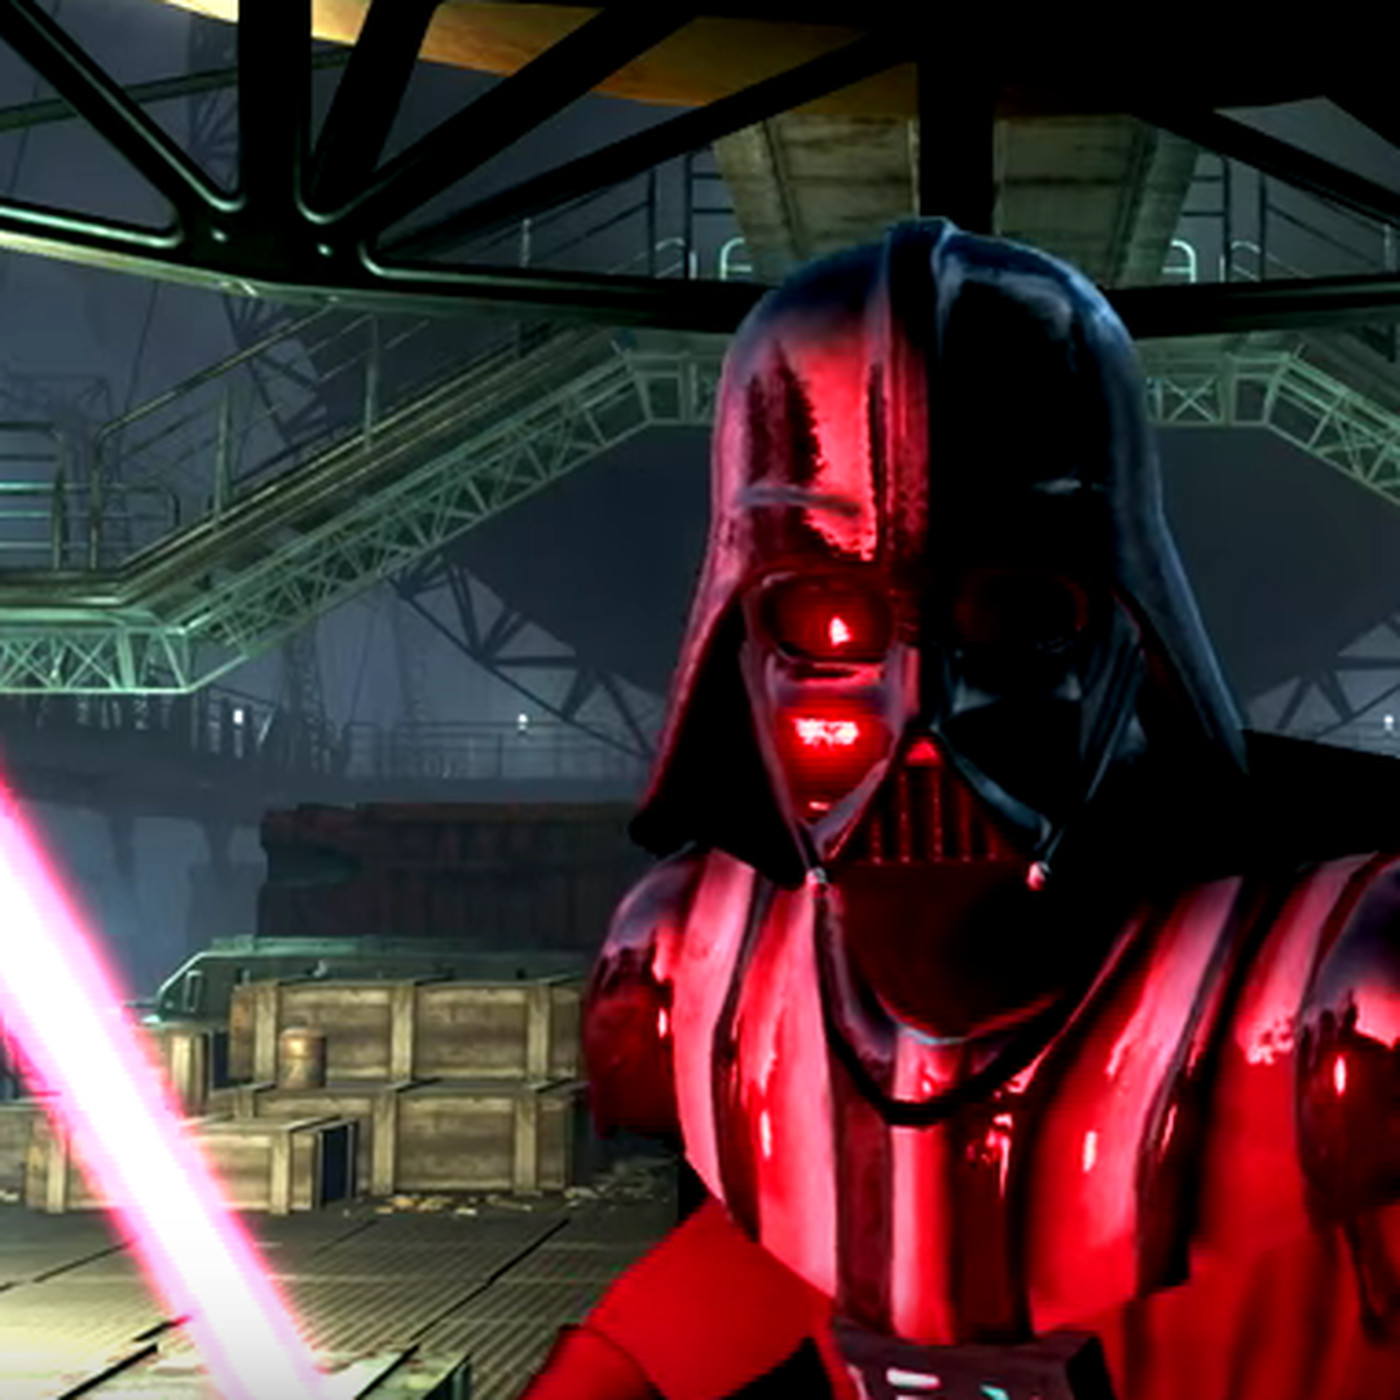 Watch Darth Vader and Luke Skywalker duel with lightsabers in